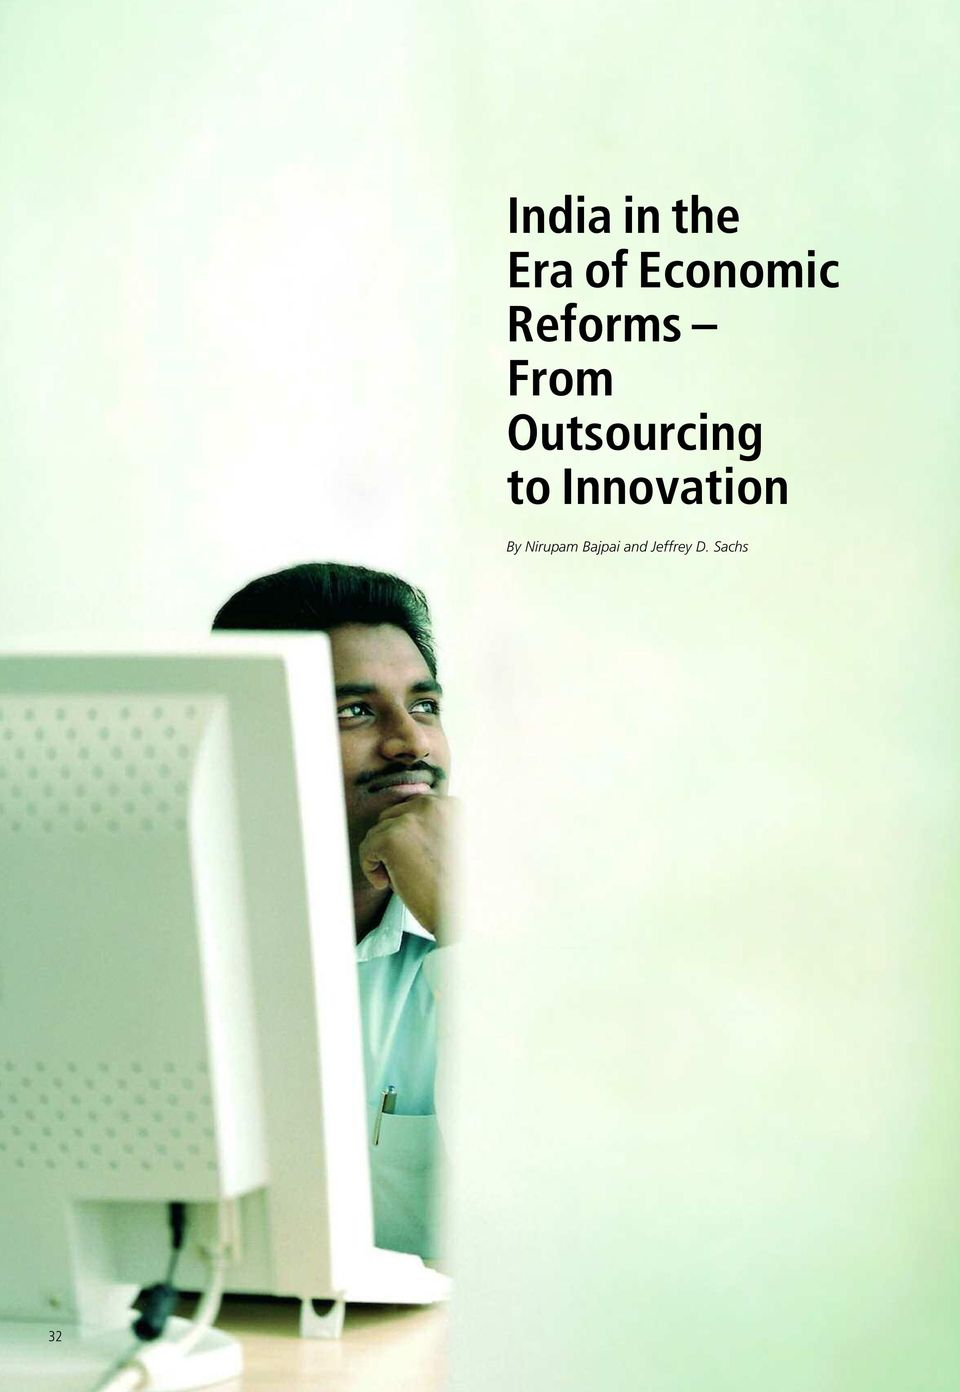 Outsourcing to Innovation